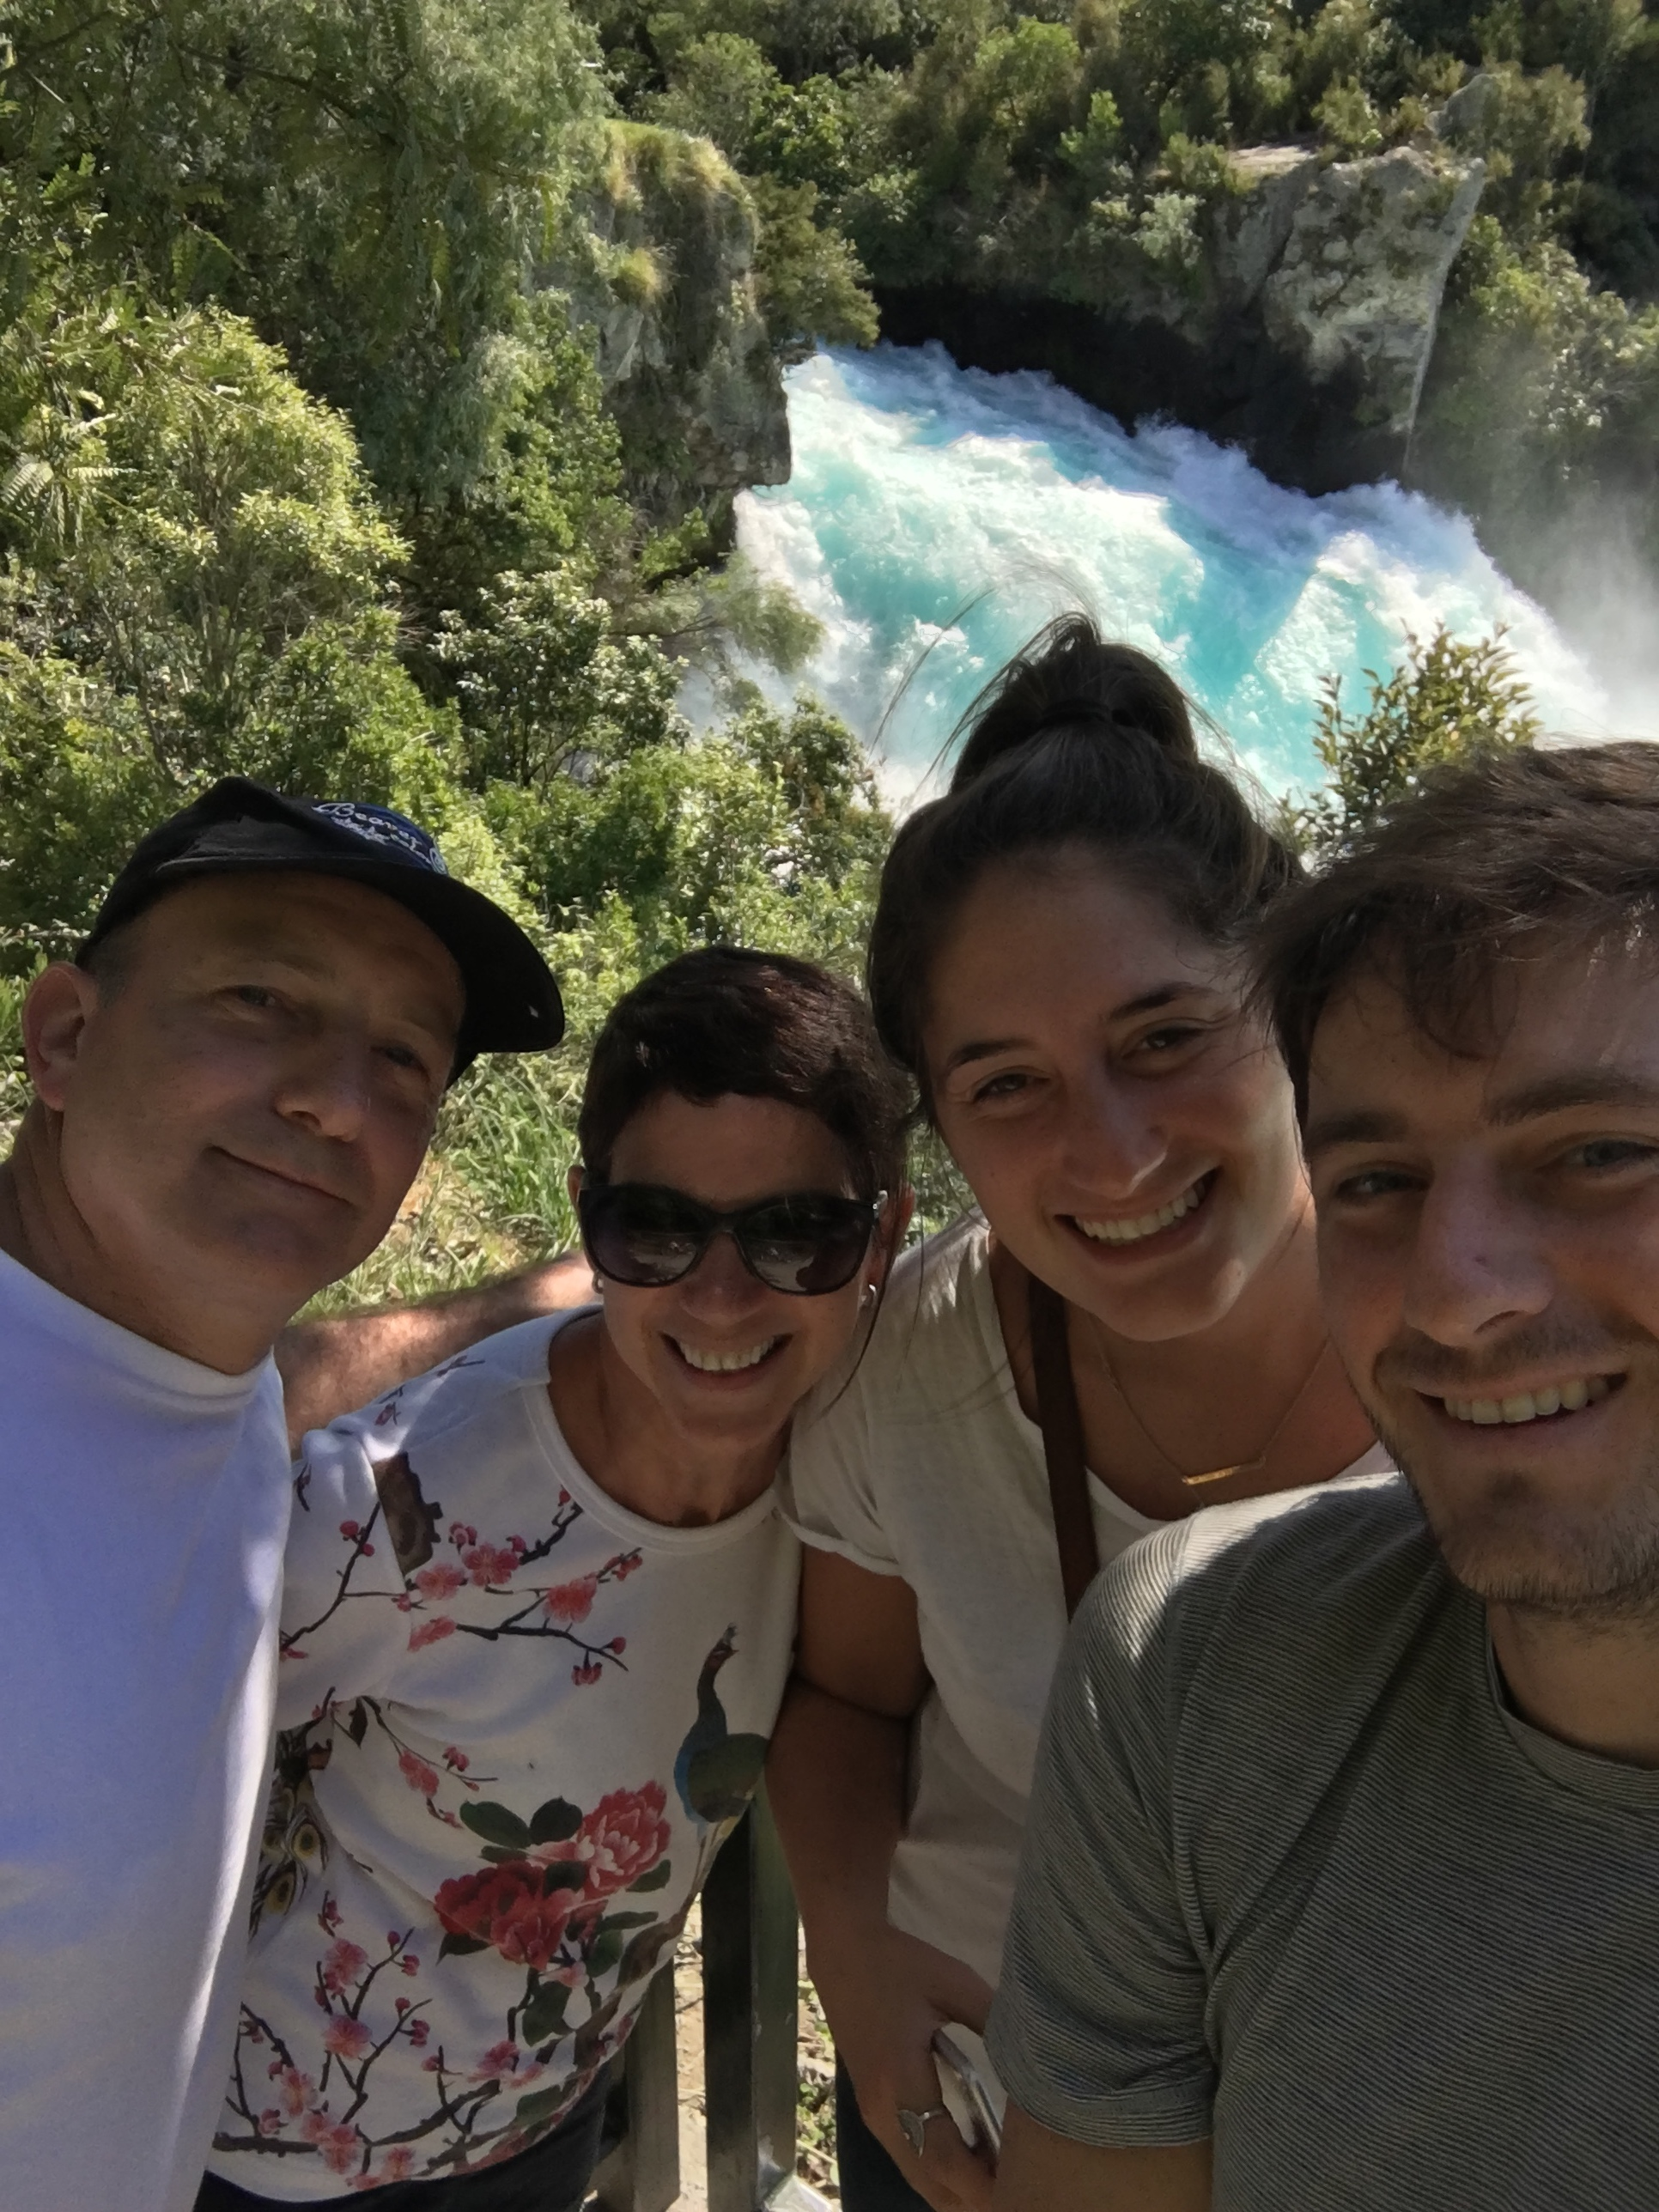 Family at Huka Falls